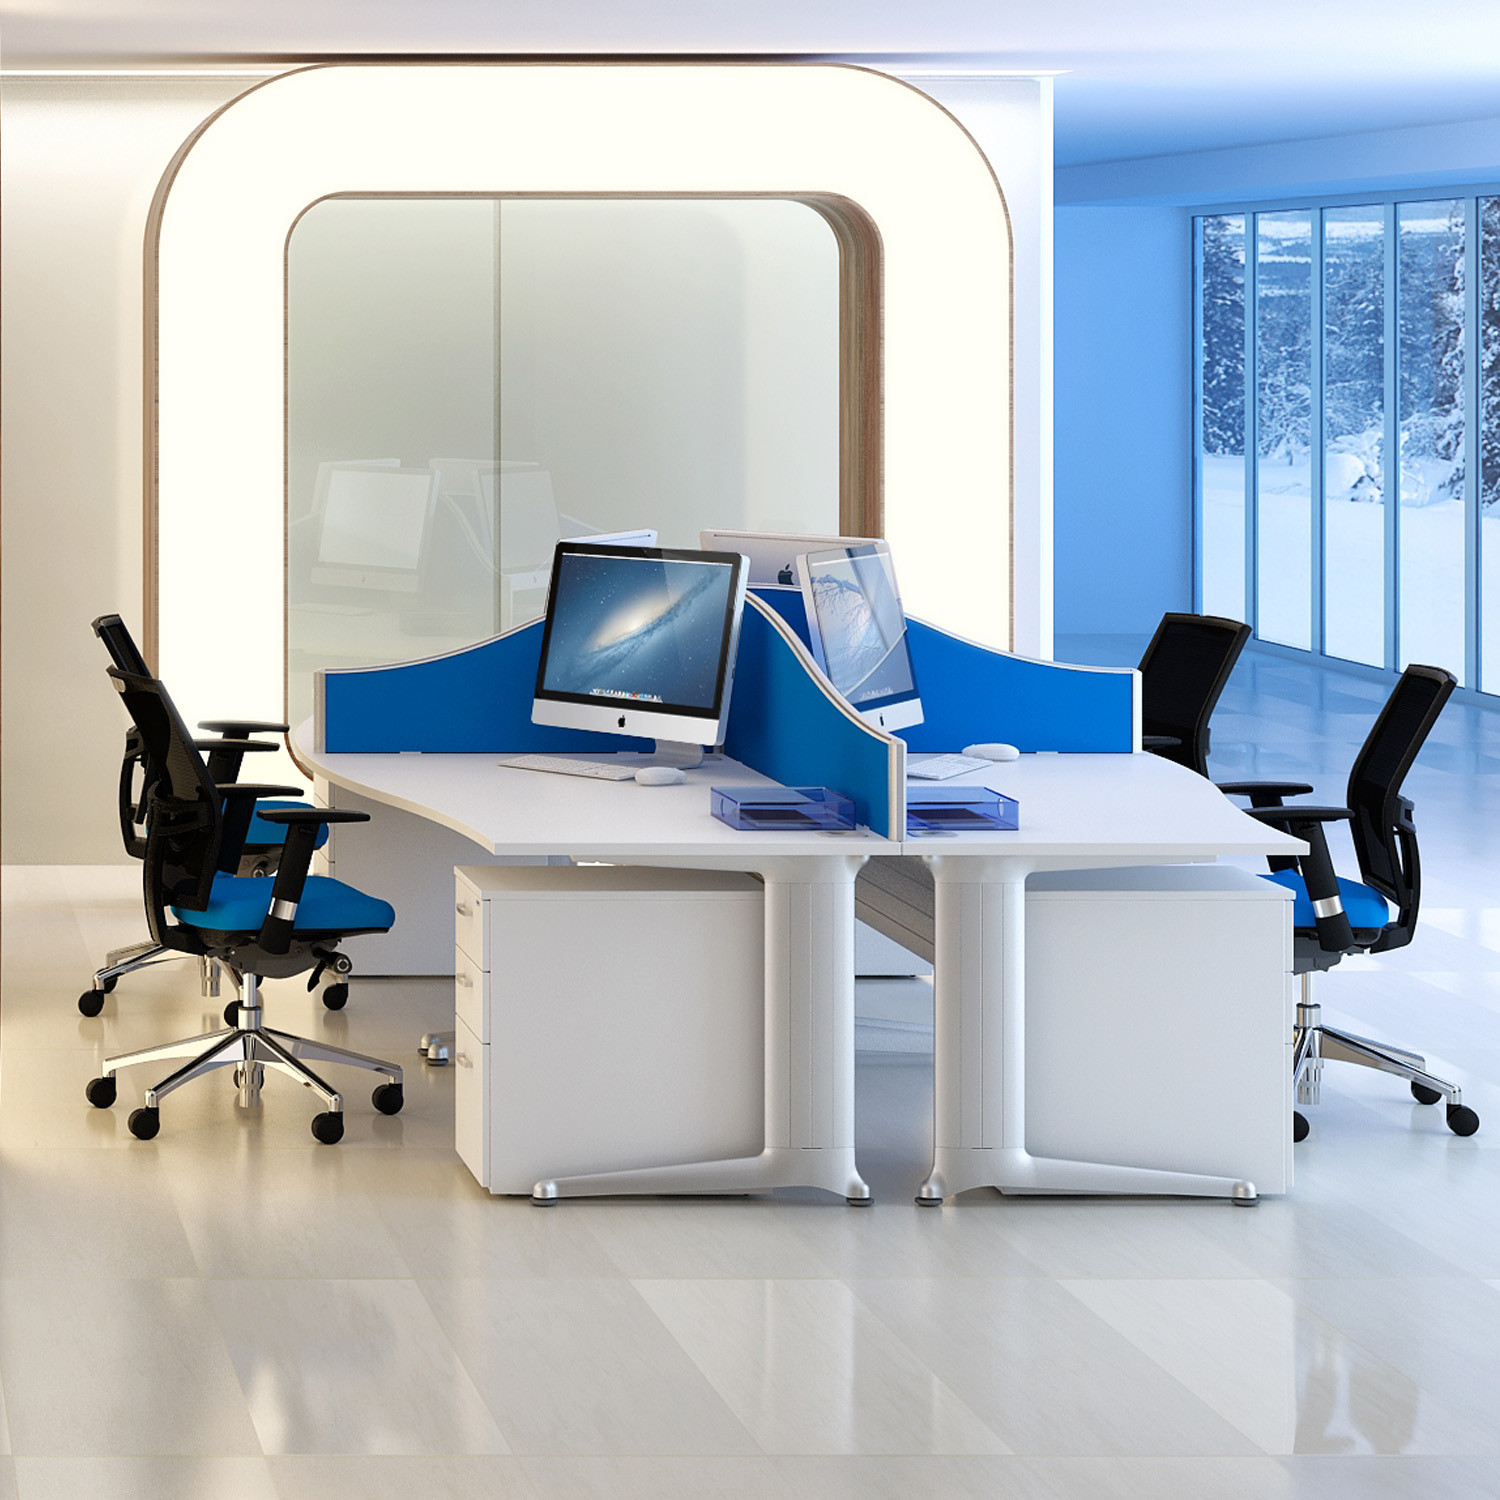 Kassini Shaped Office Desks with screens